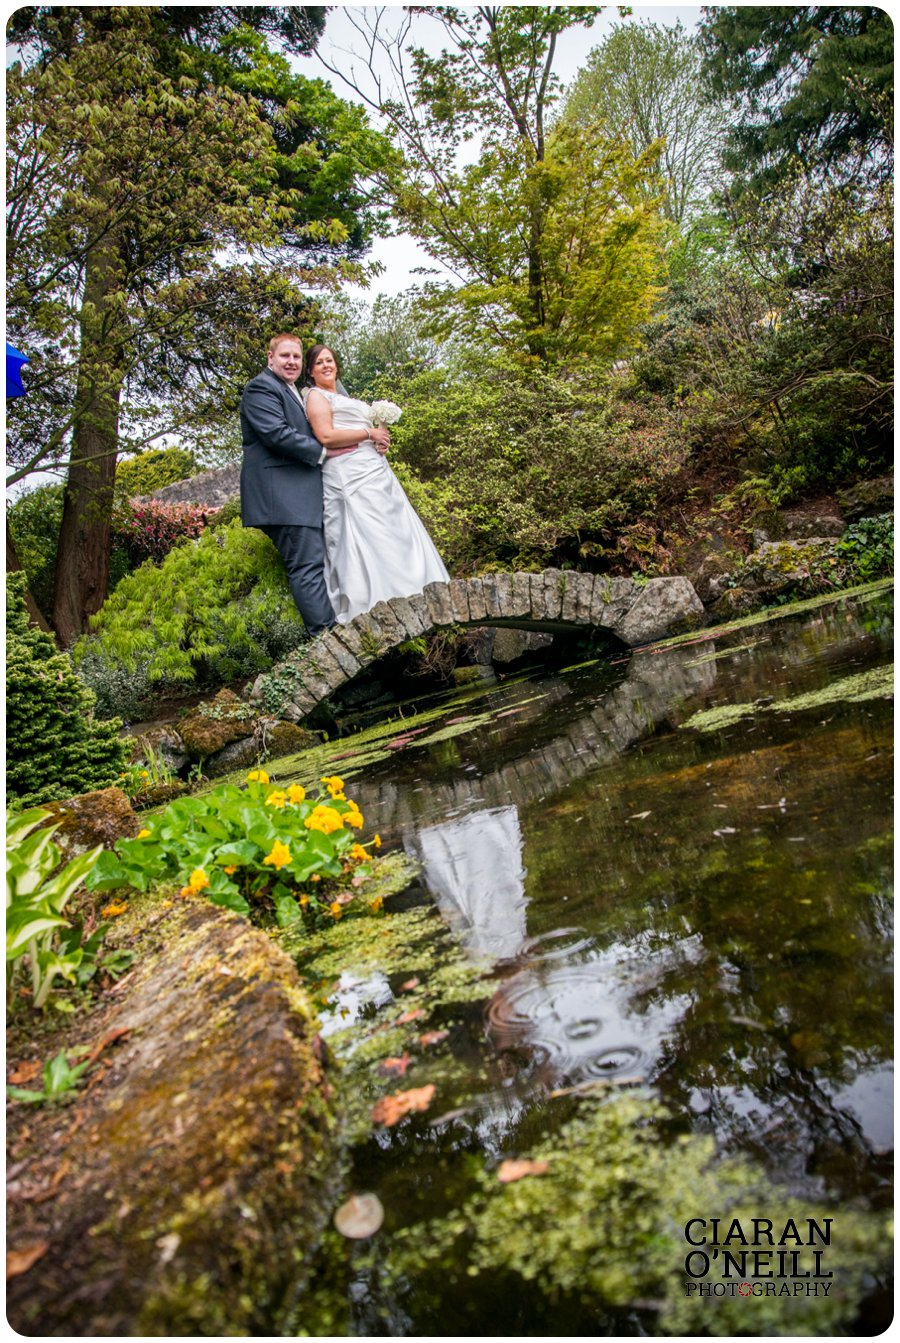 Angela & Connor's wedding at Tullyglass Hotel by Ciaran O'Neill Photography 17